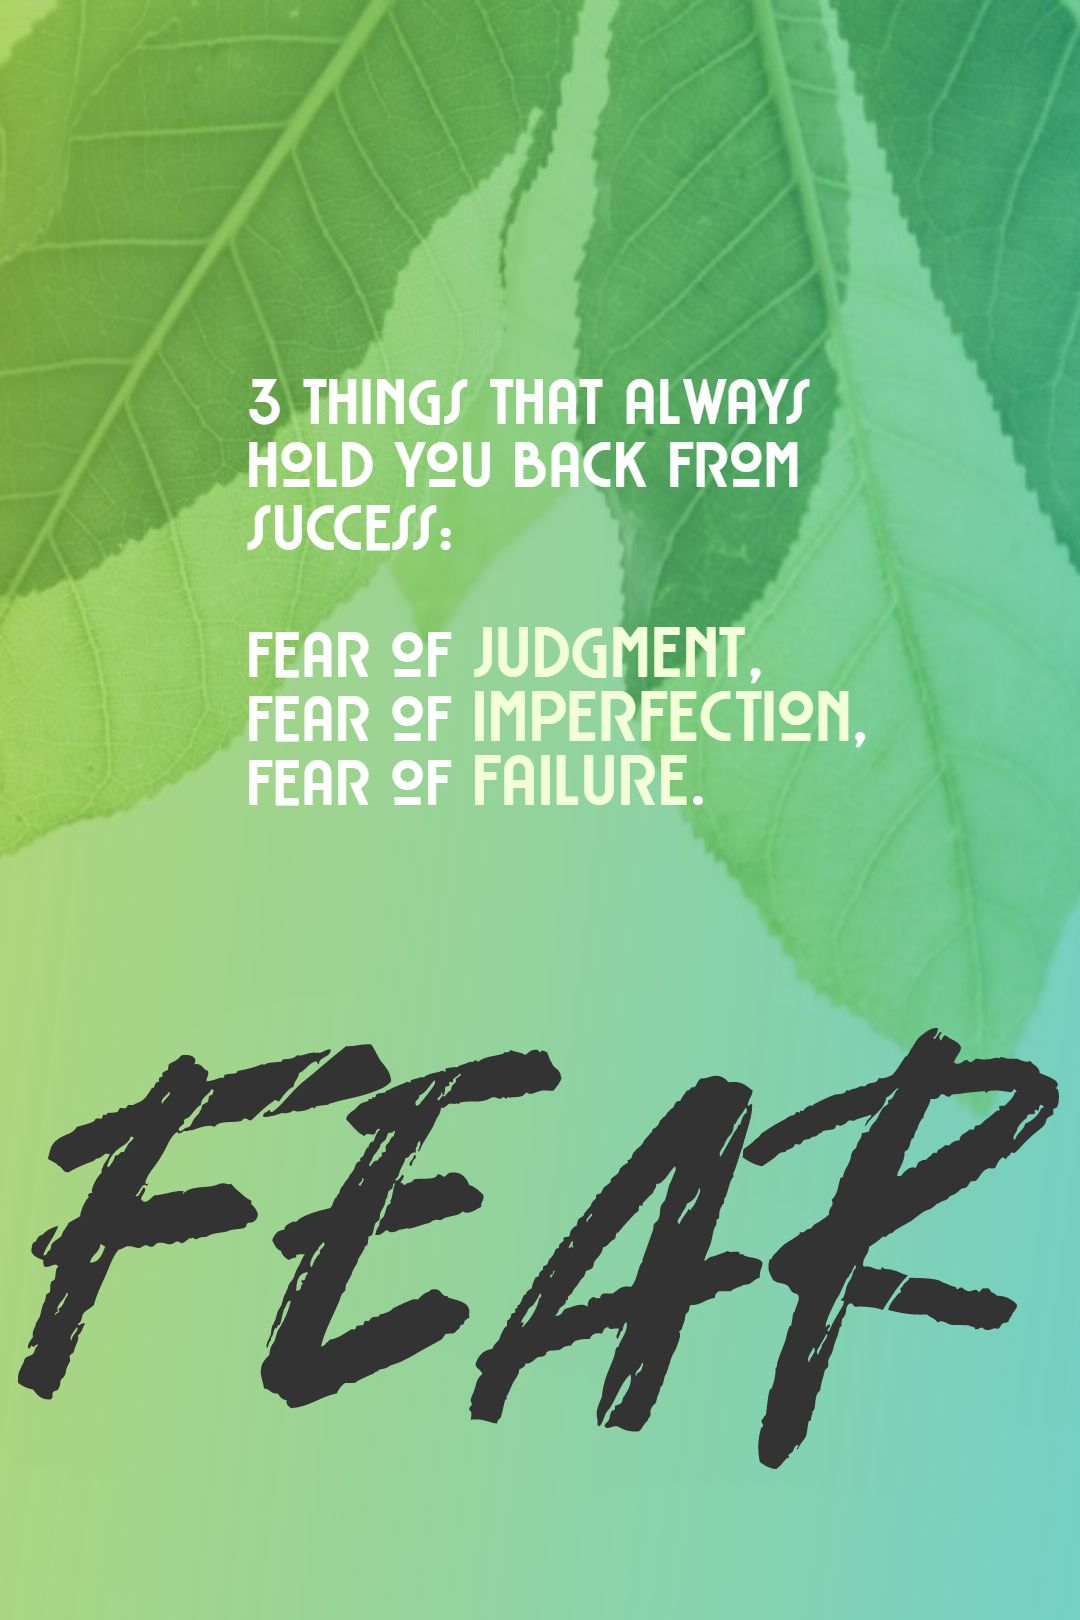 Quotes image of 3 things that always hold you back from success: Fear of Judgment, Fear of Imperfection, Fear of Failure.